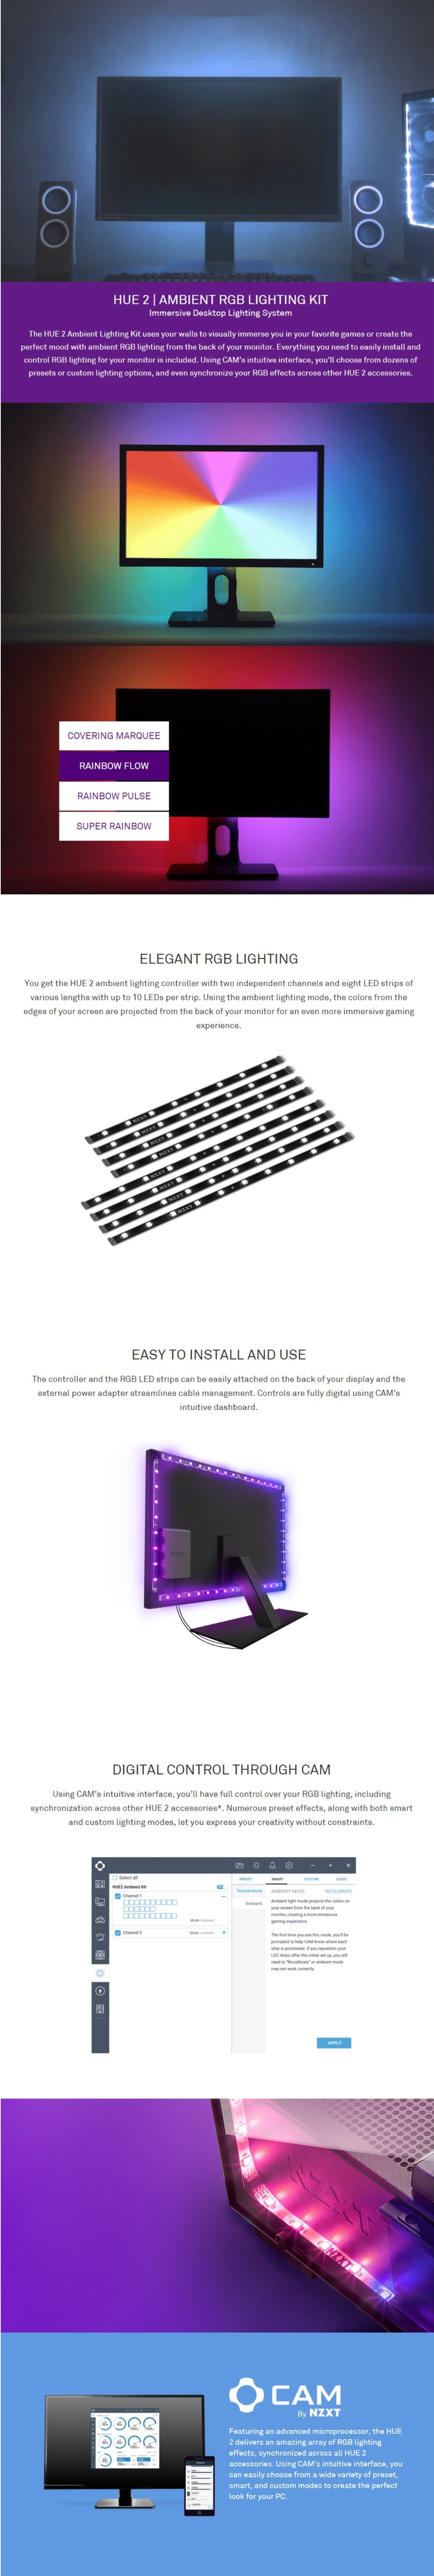 NZXT 21-26 Inch HUE 2 Ambient RGB Lighting Kit Designed for Monitors 21